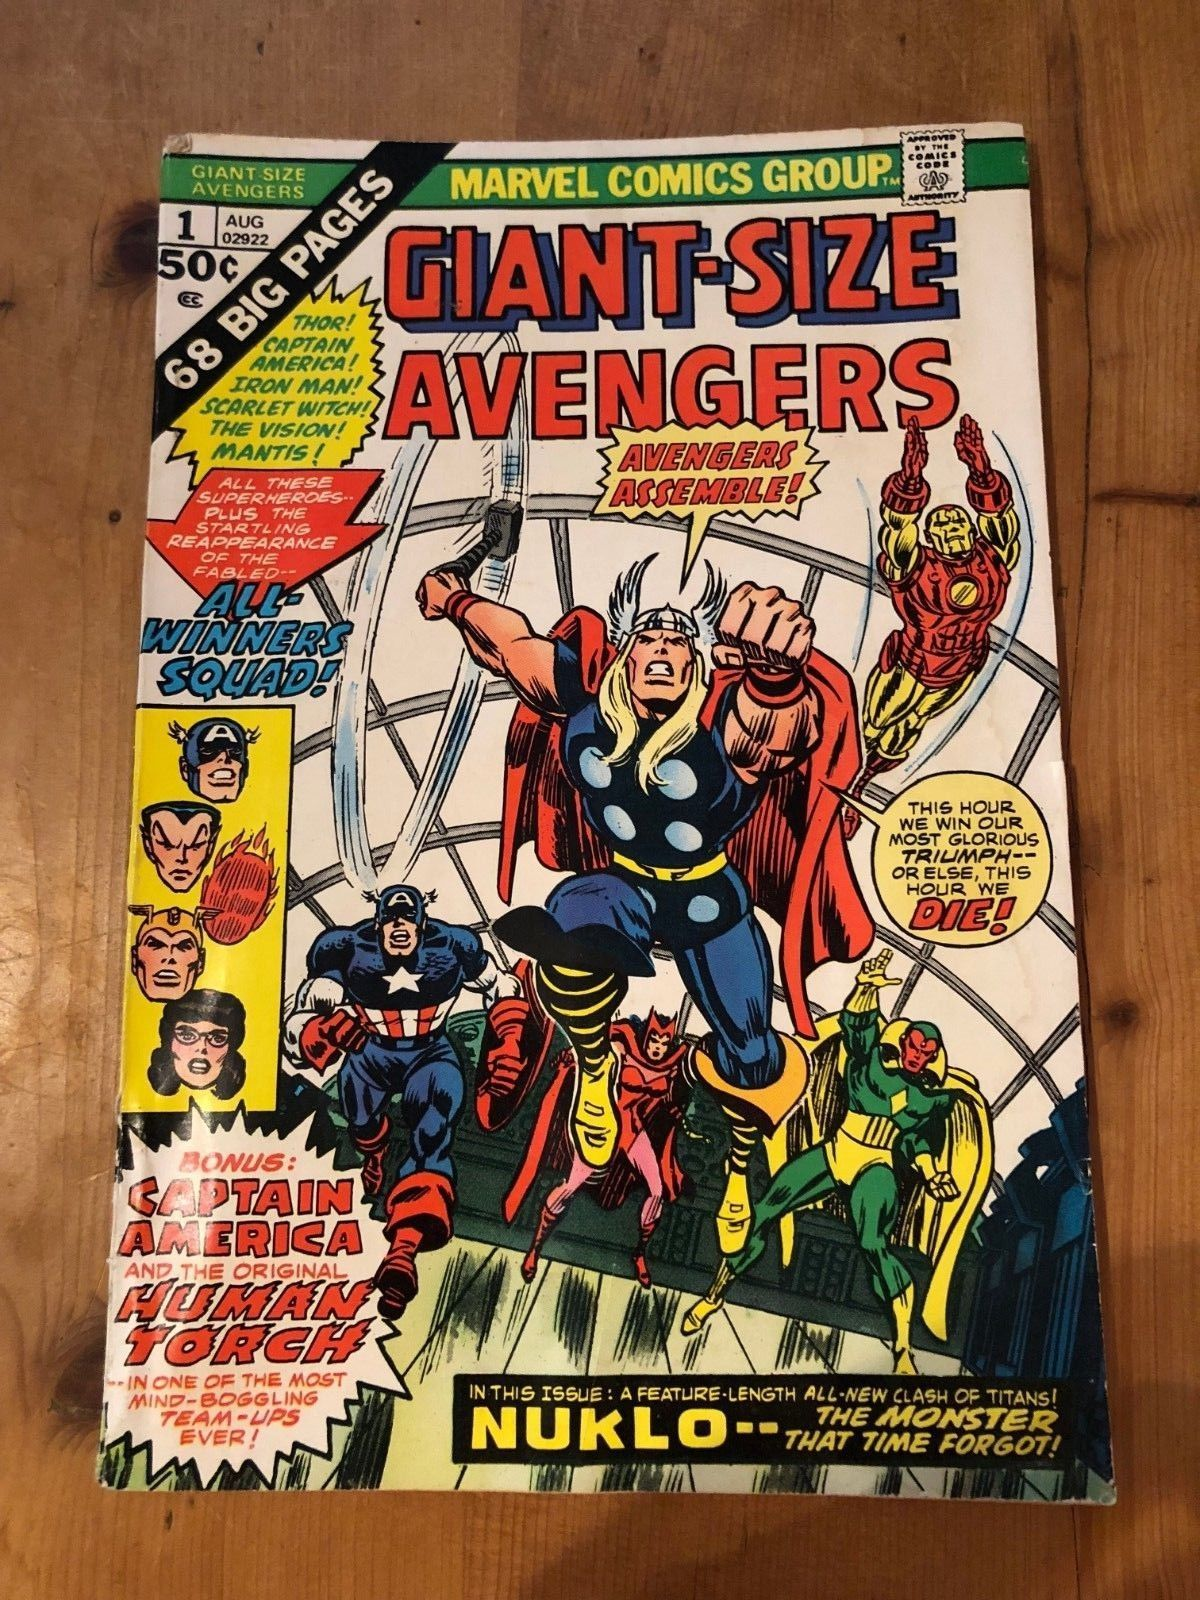 MARVEL COMICS - THE AVENGERS GIANT SIZE ANNUAL #1 (1974) VFN - 2ND APP INVADERS